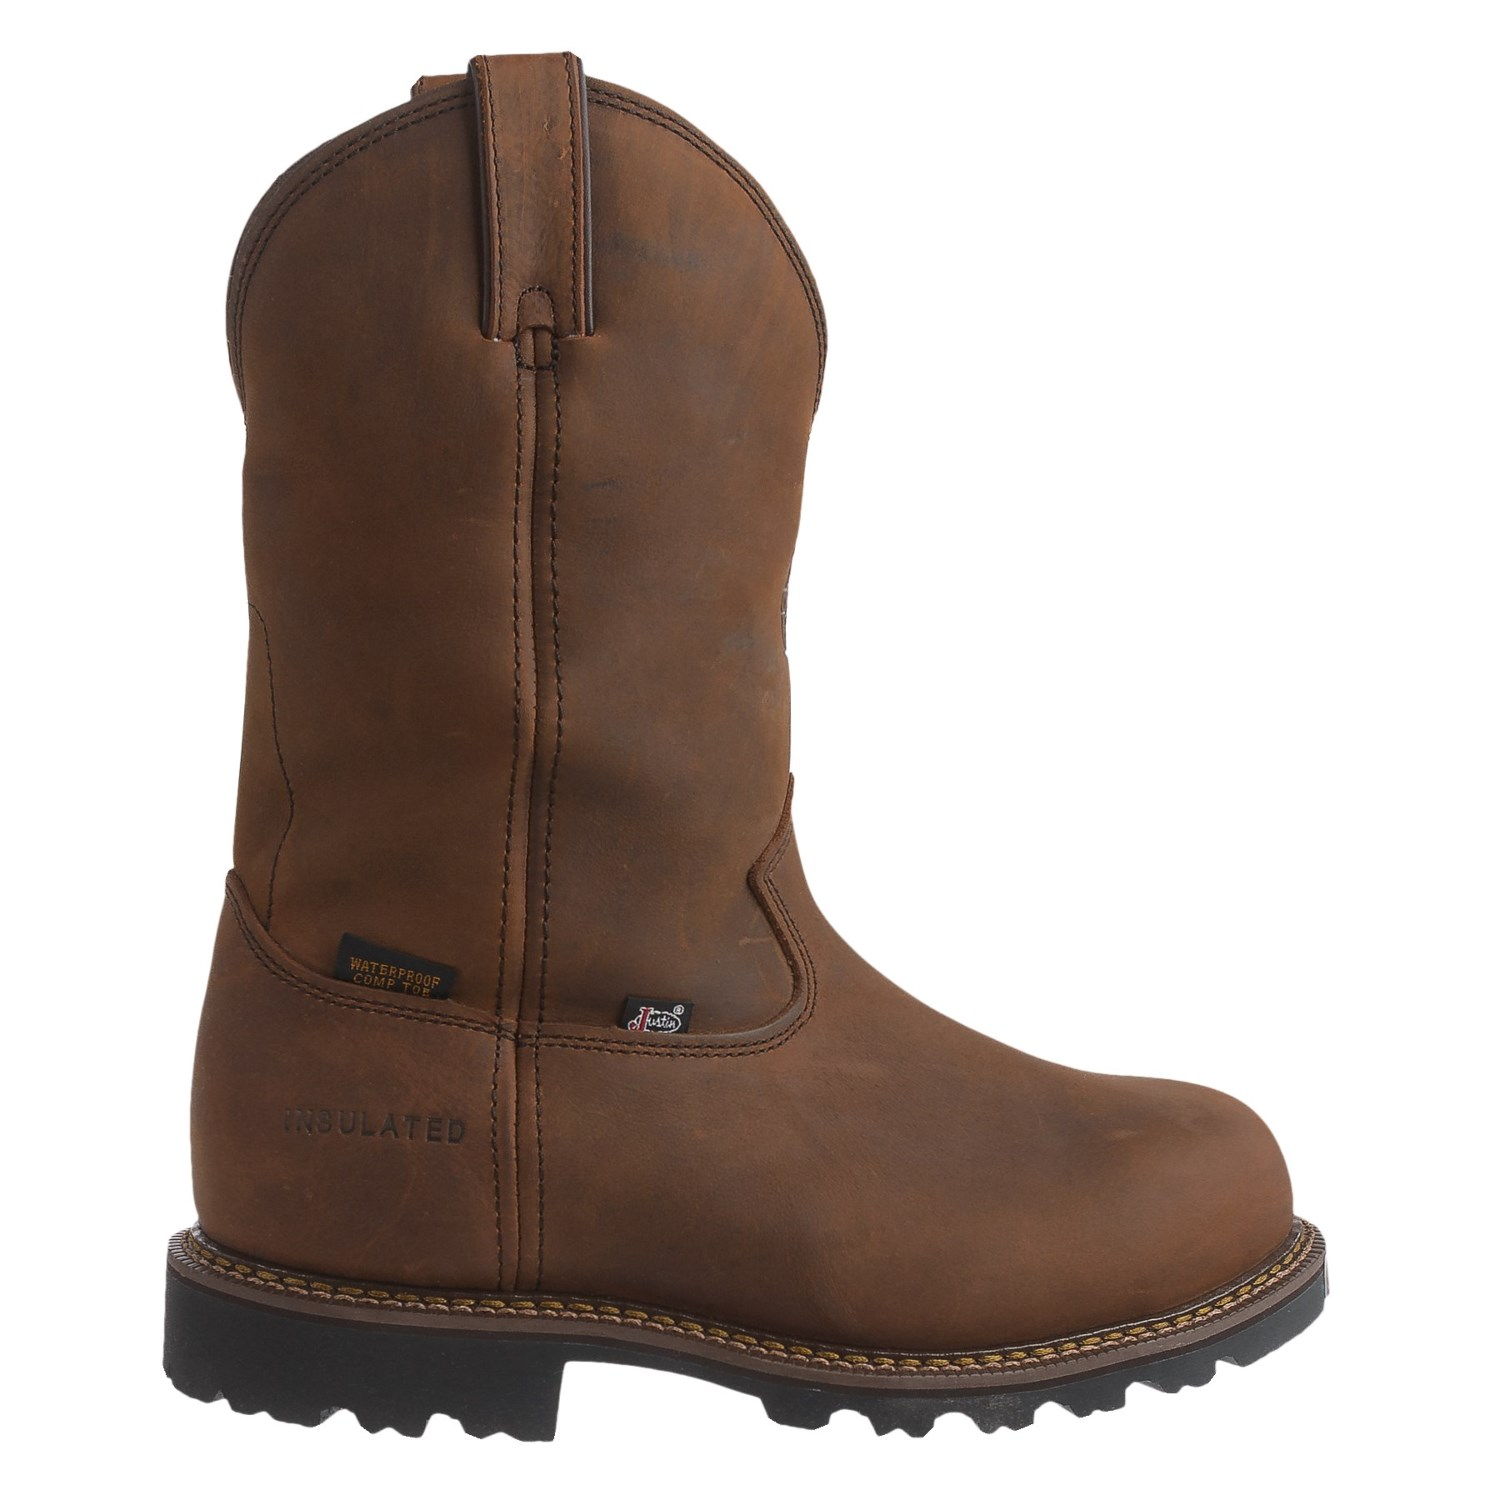 Justin leather work gloves - Justin Boots 11 Stag Gaucho Work Boots Insulated Composite Toe Leather For Men